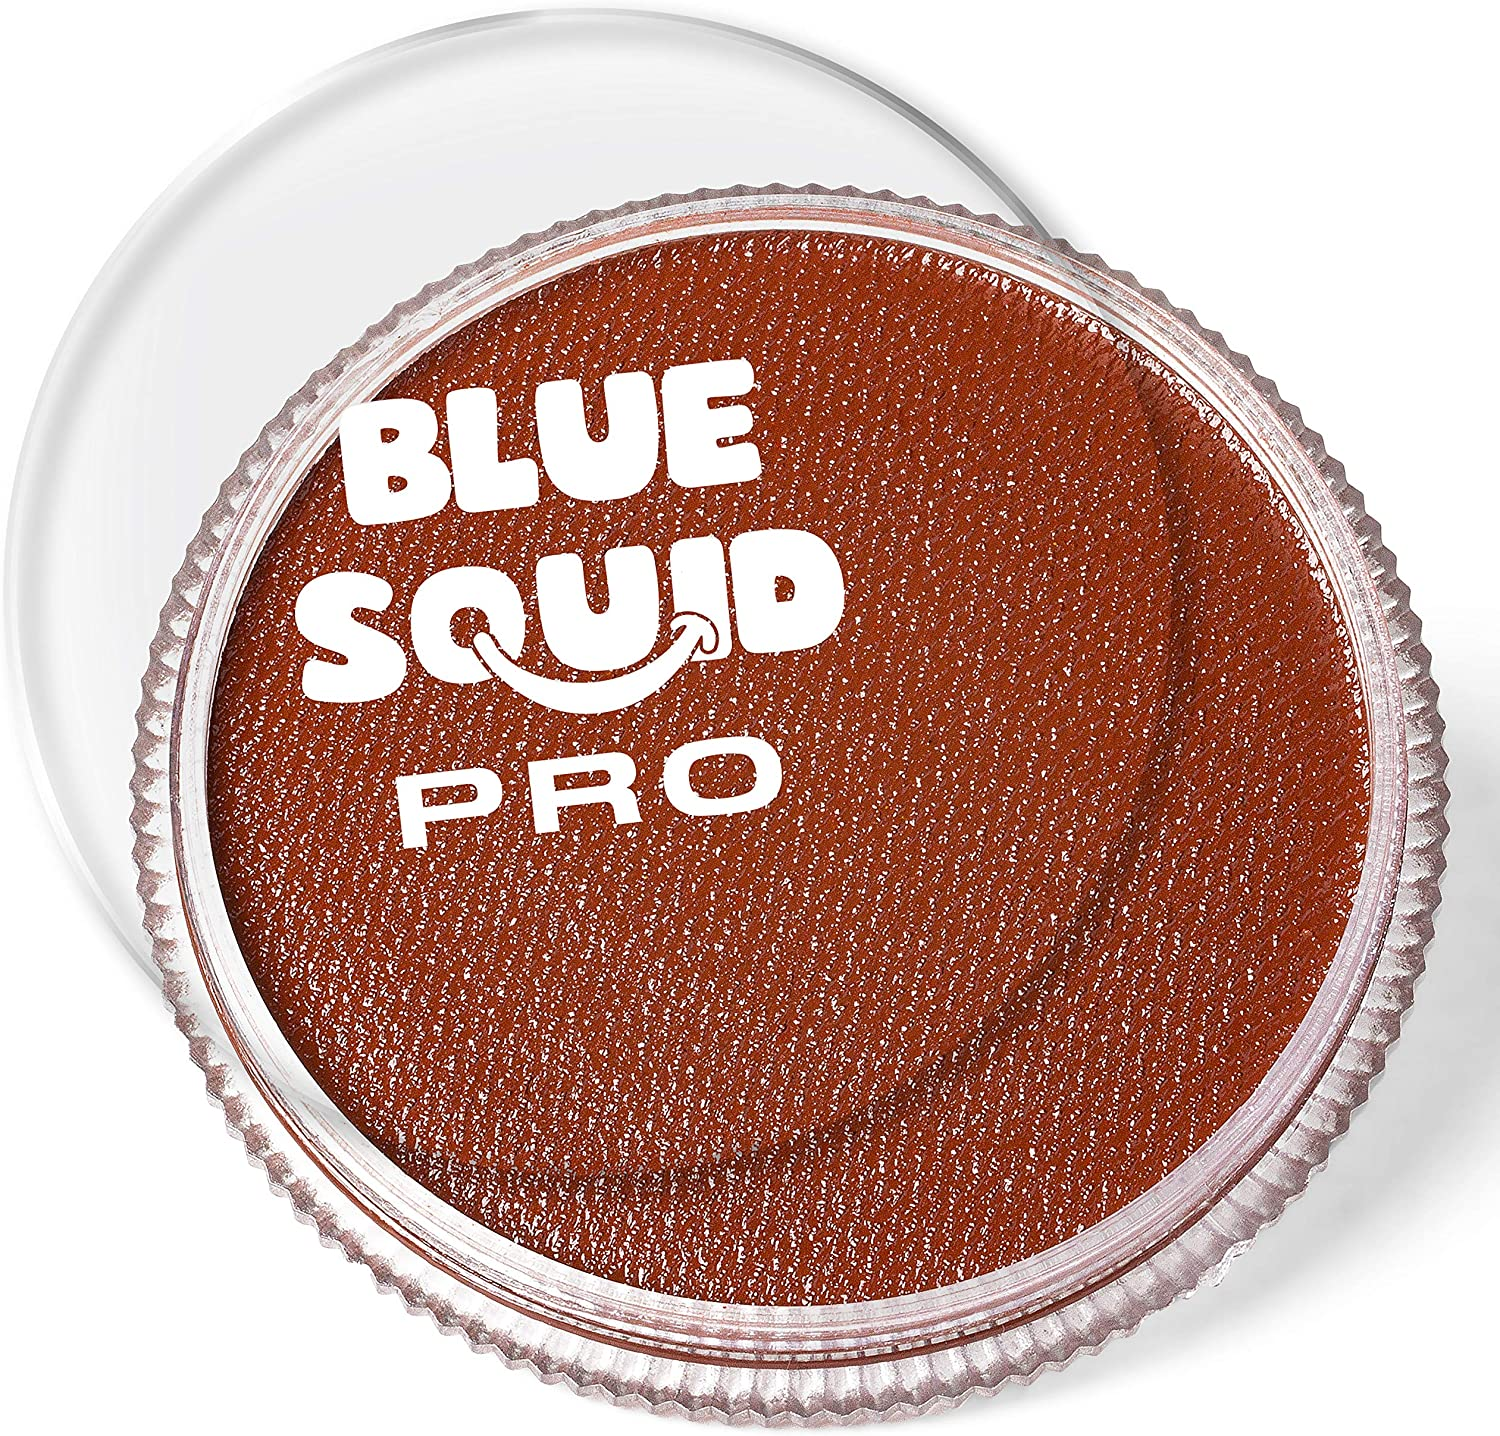 Classic Orange Superior Quality Professional Water Based Single Cake 30gm Face /& Body Makeup Supplies for Adults Blue Squid Pro Face Paint Kids /& SFX